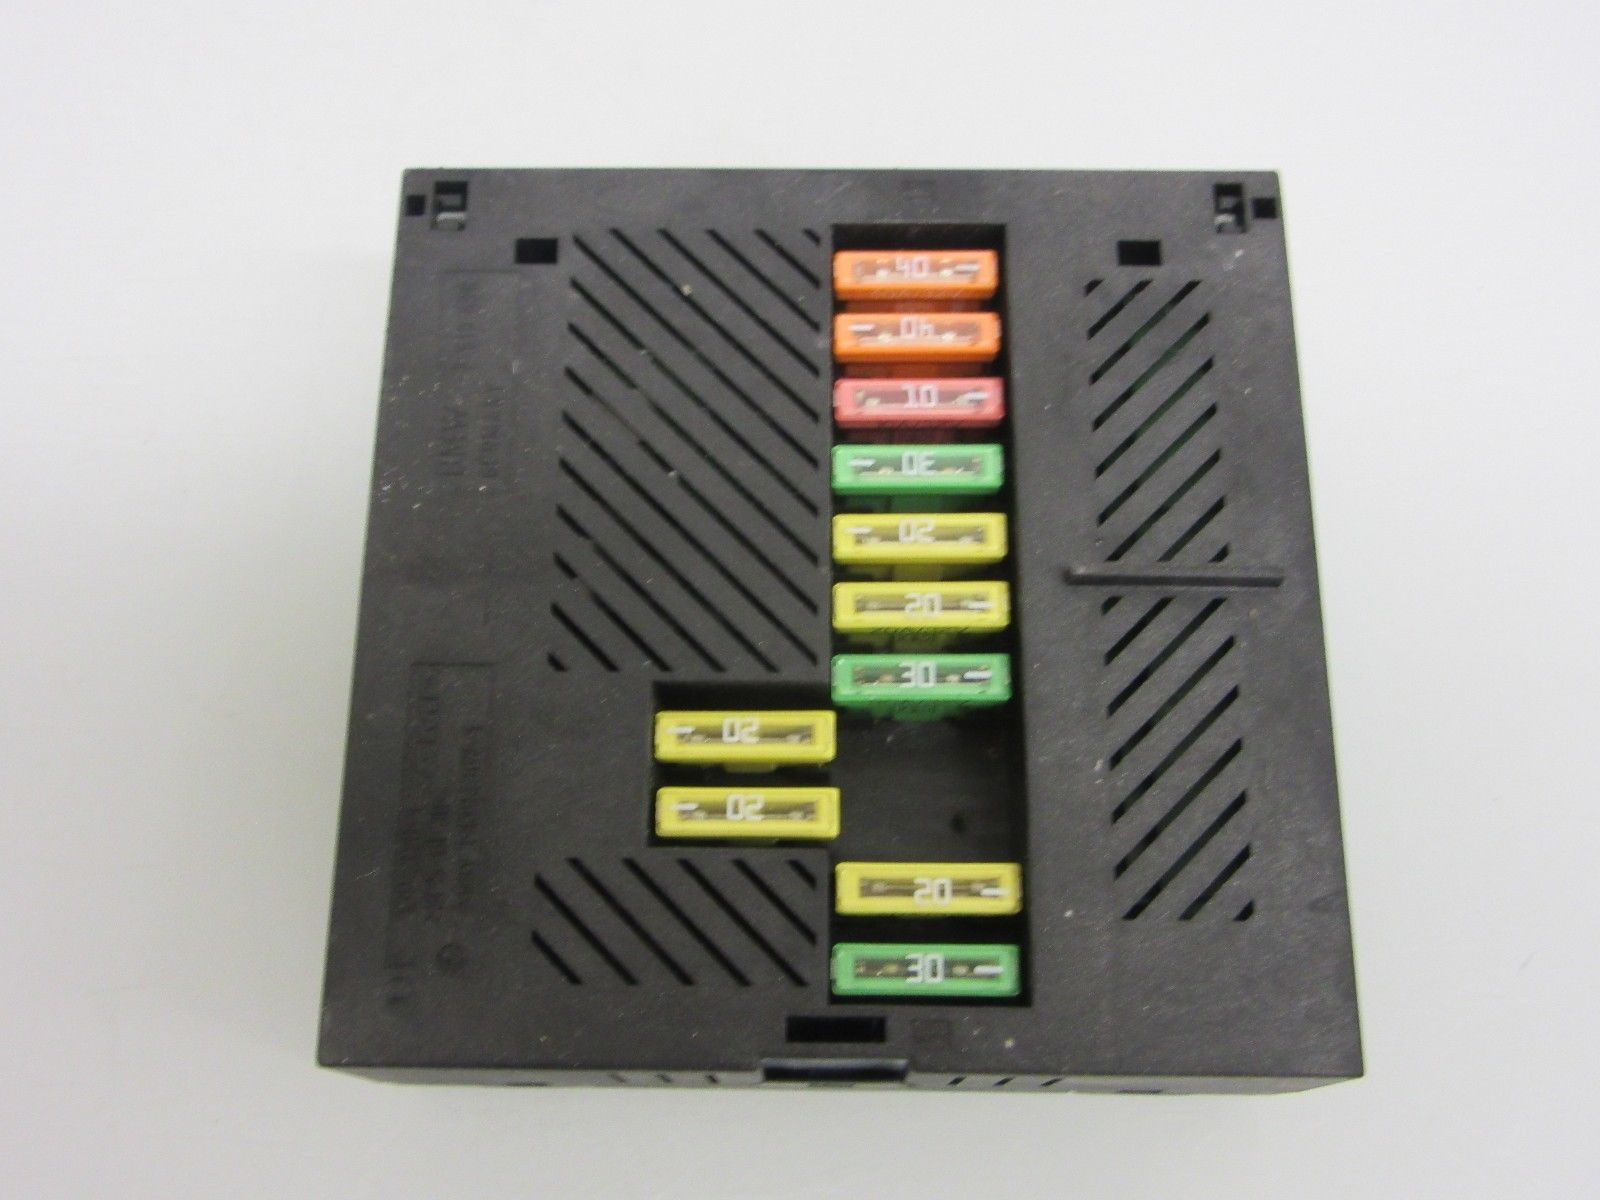 Bmw 7 Series Fuse Box Simple Wiring Diagram Options 323i 02 08 E66 Integrated Supply 7510638 Oem Panel